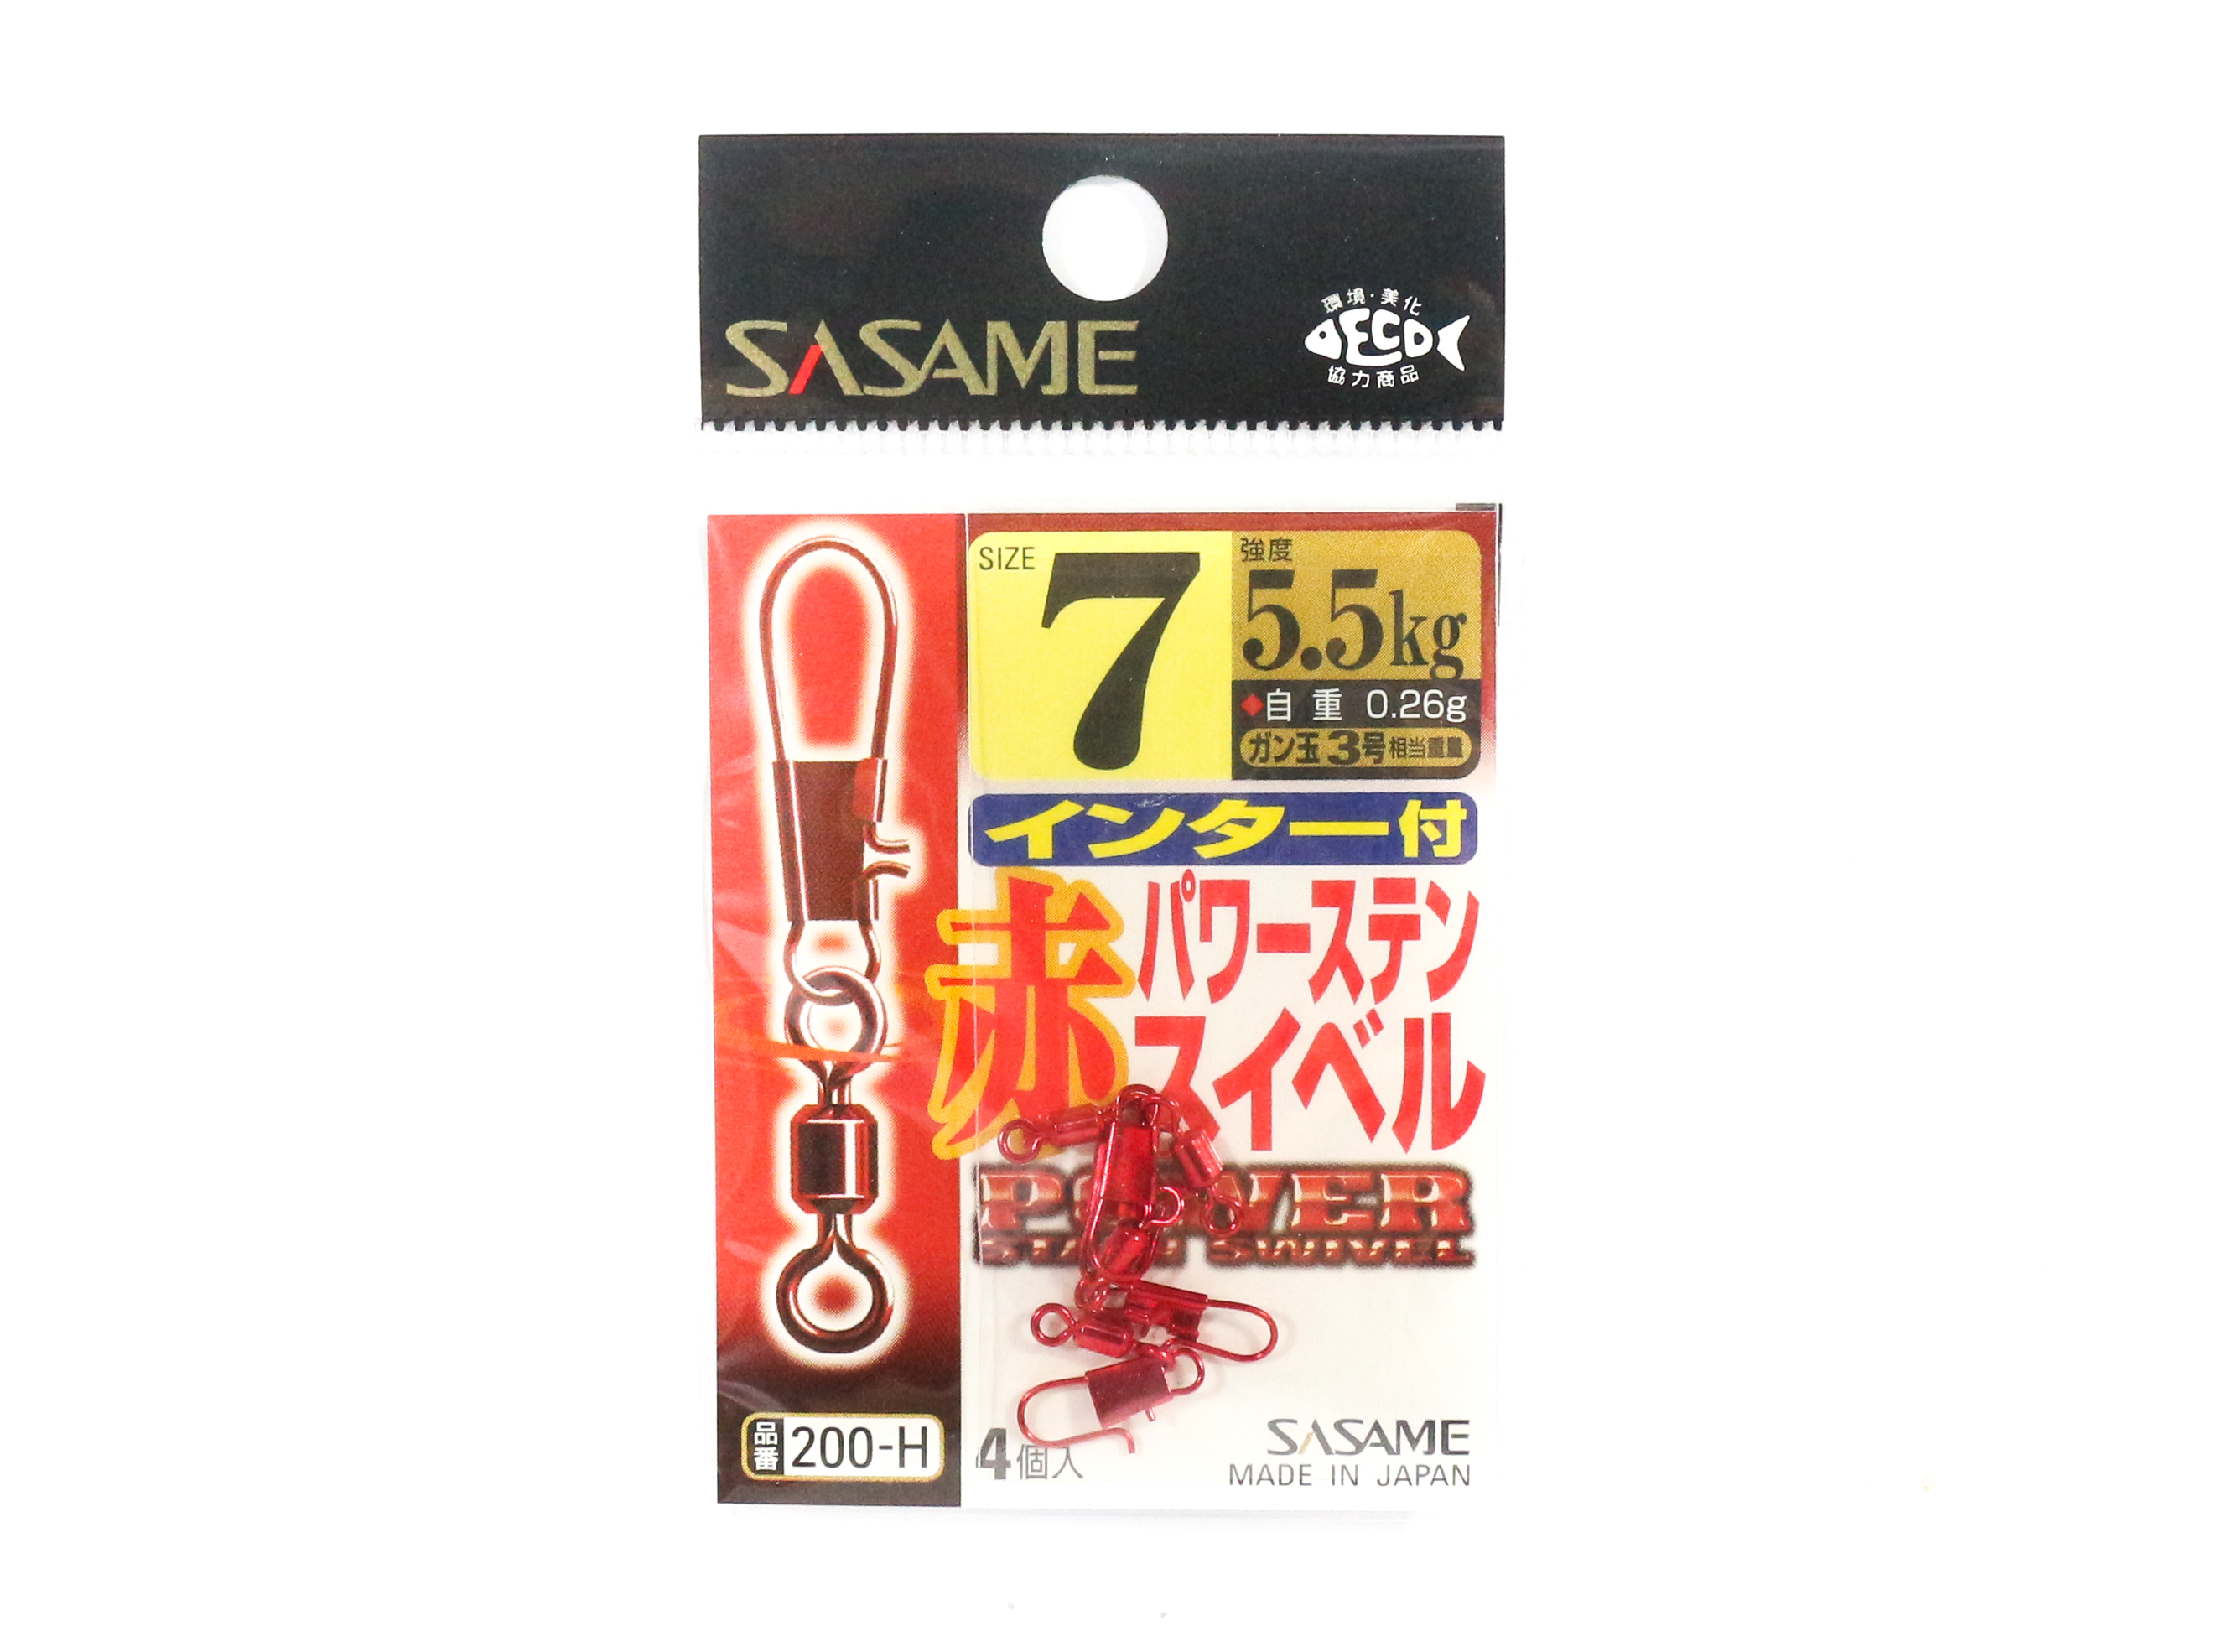 Sasame 200-H Power Stain Snap Swivel Smooth Spin Red Size 7 (8805)